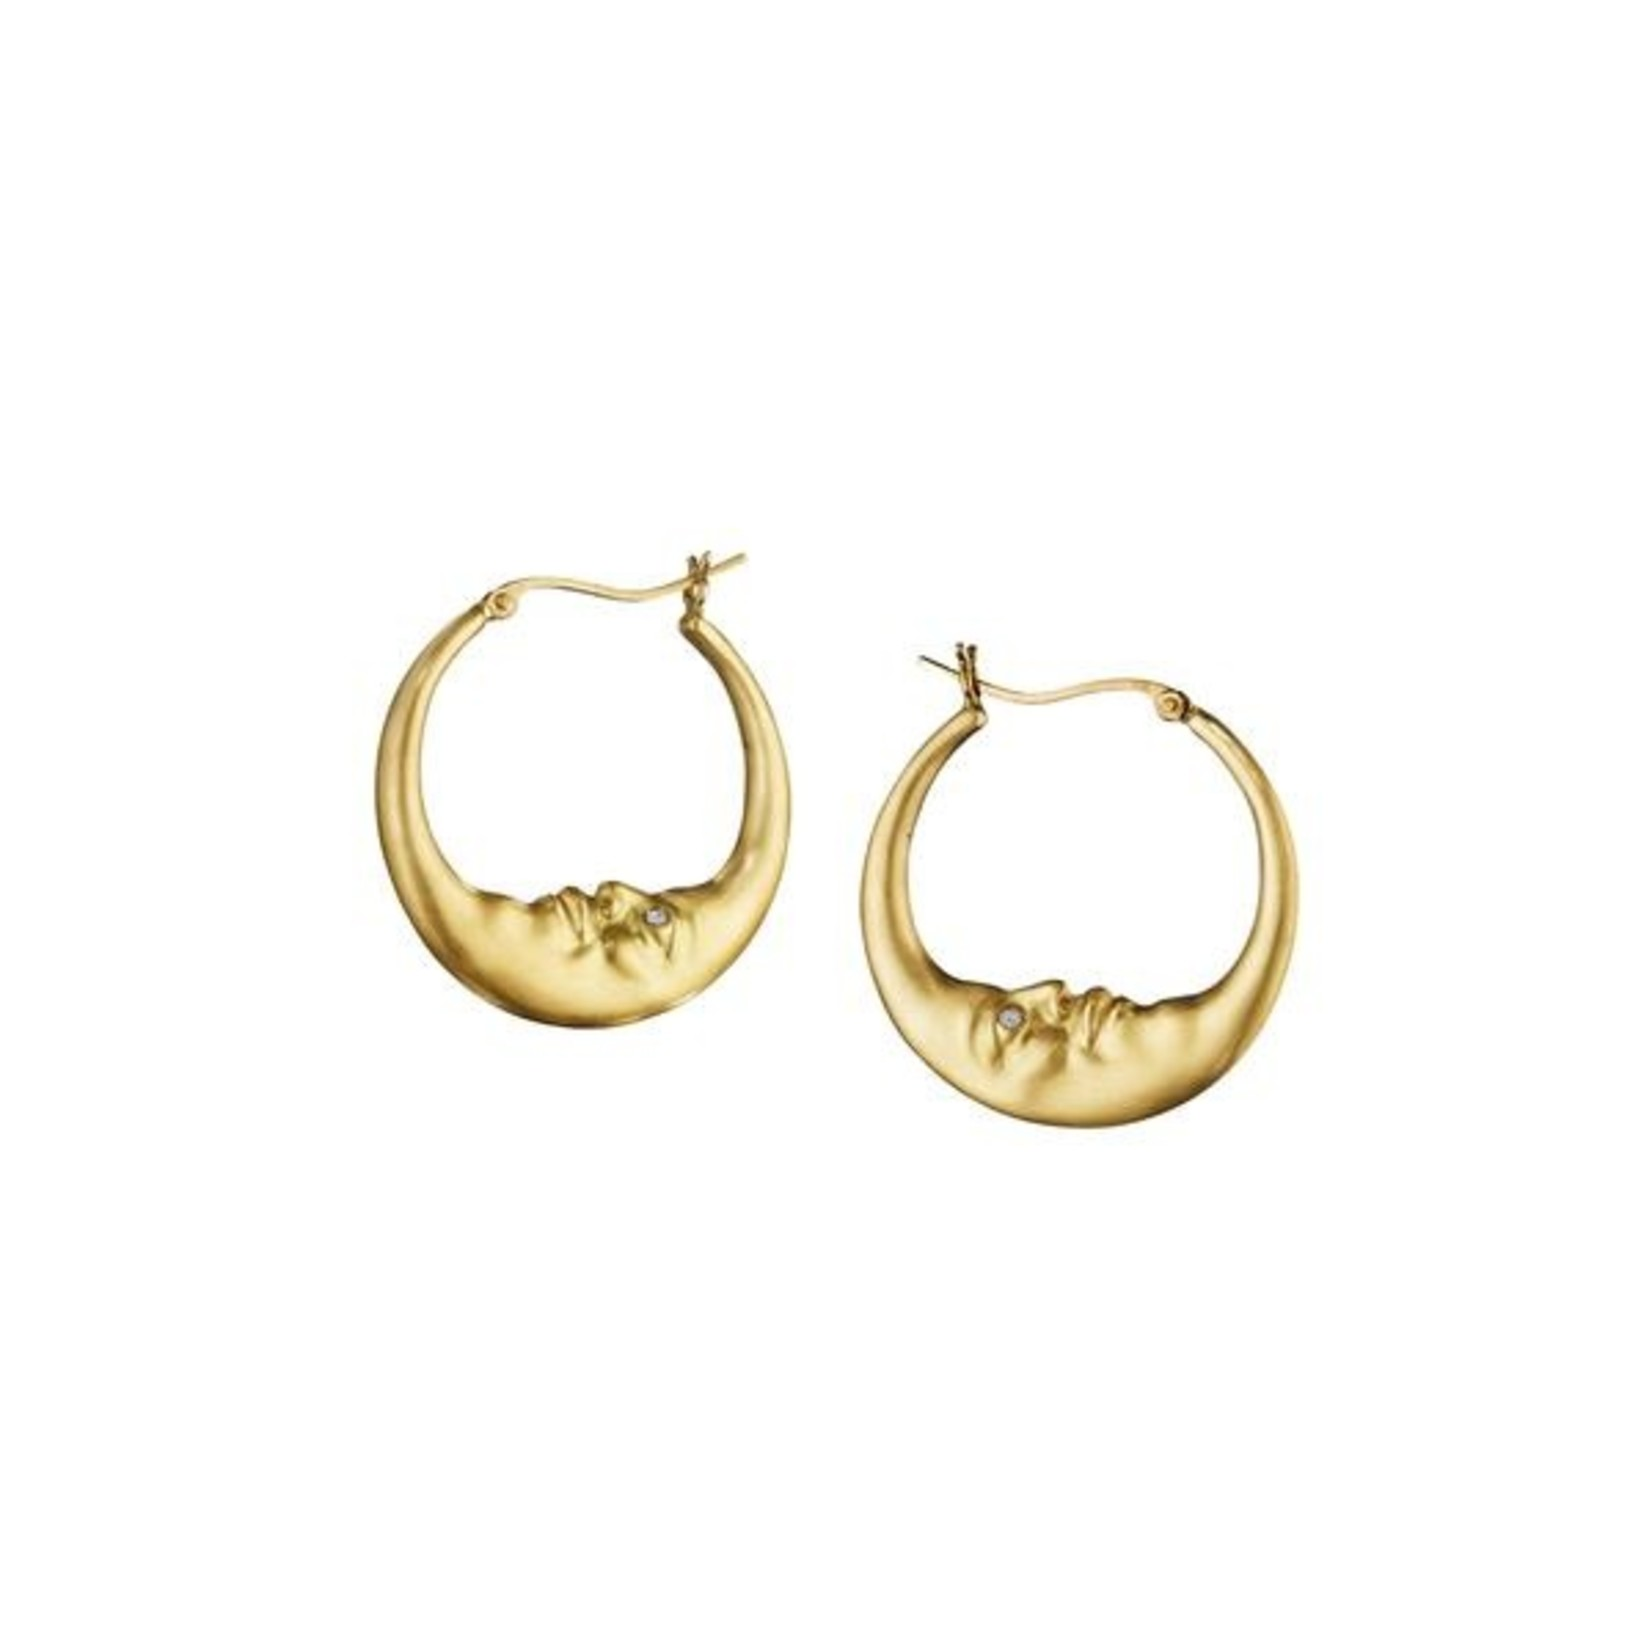 ANTHONY LENT SMALL CRESCENT MOON HOOP EARRINGS